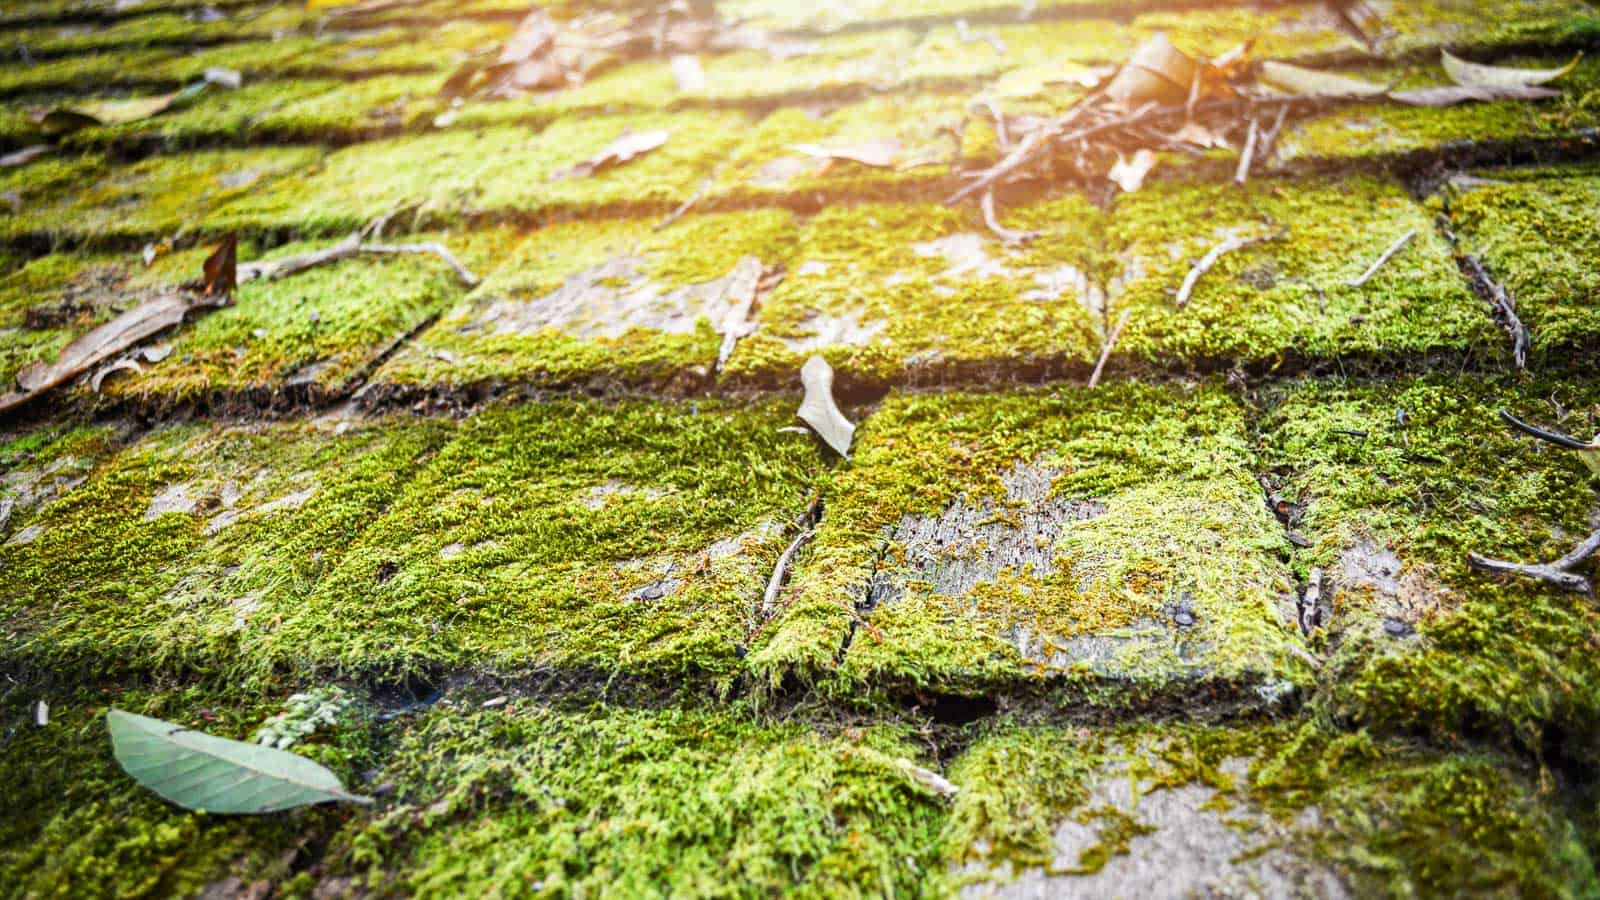 Moss is damaging for your roof. Have it removed by professionals as soon as possible.